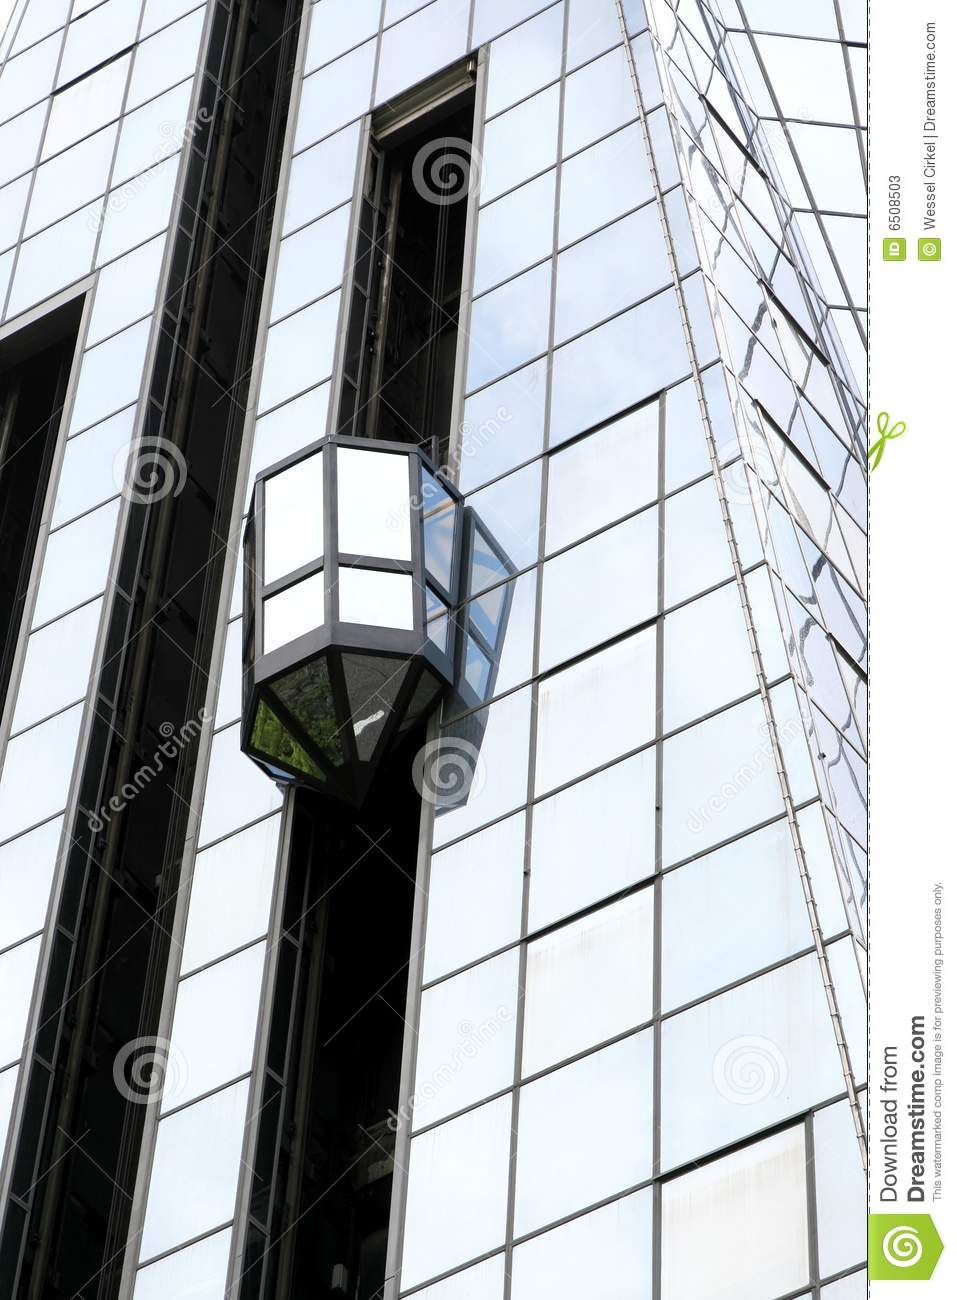 Glass Elevator Exterior Stock Photos - Royalty Free Images